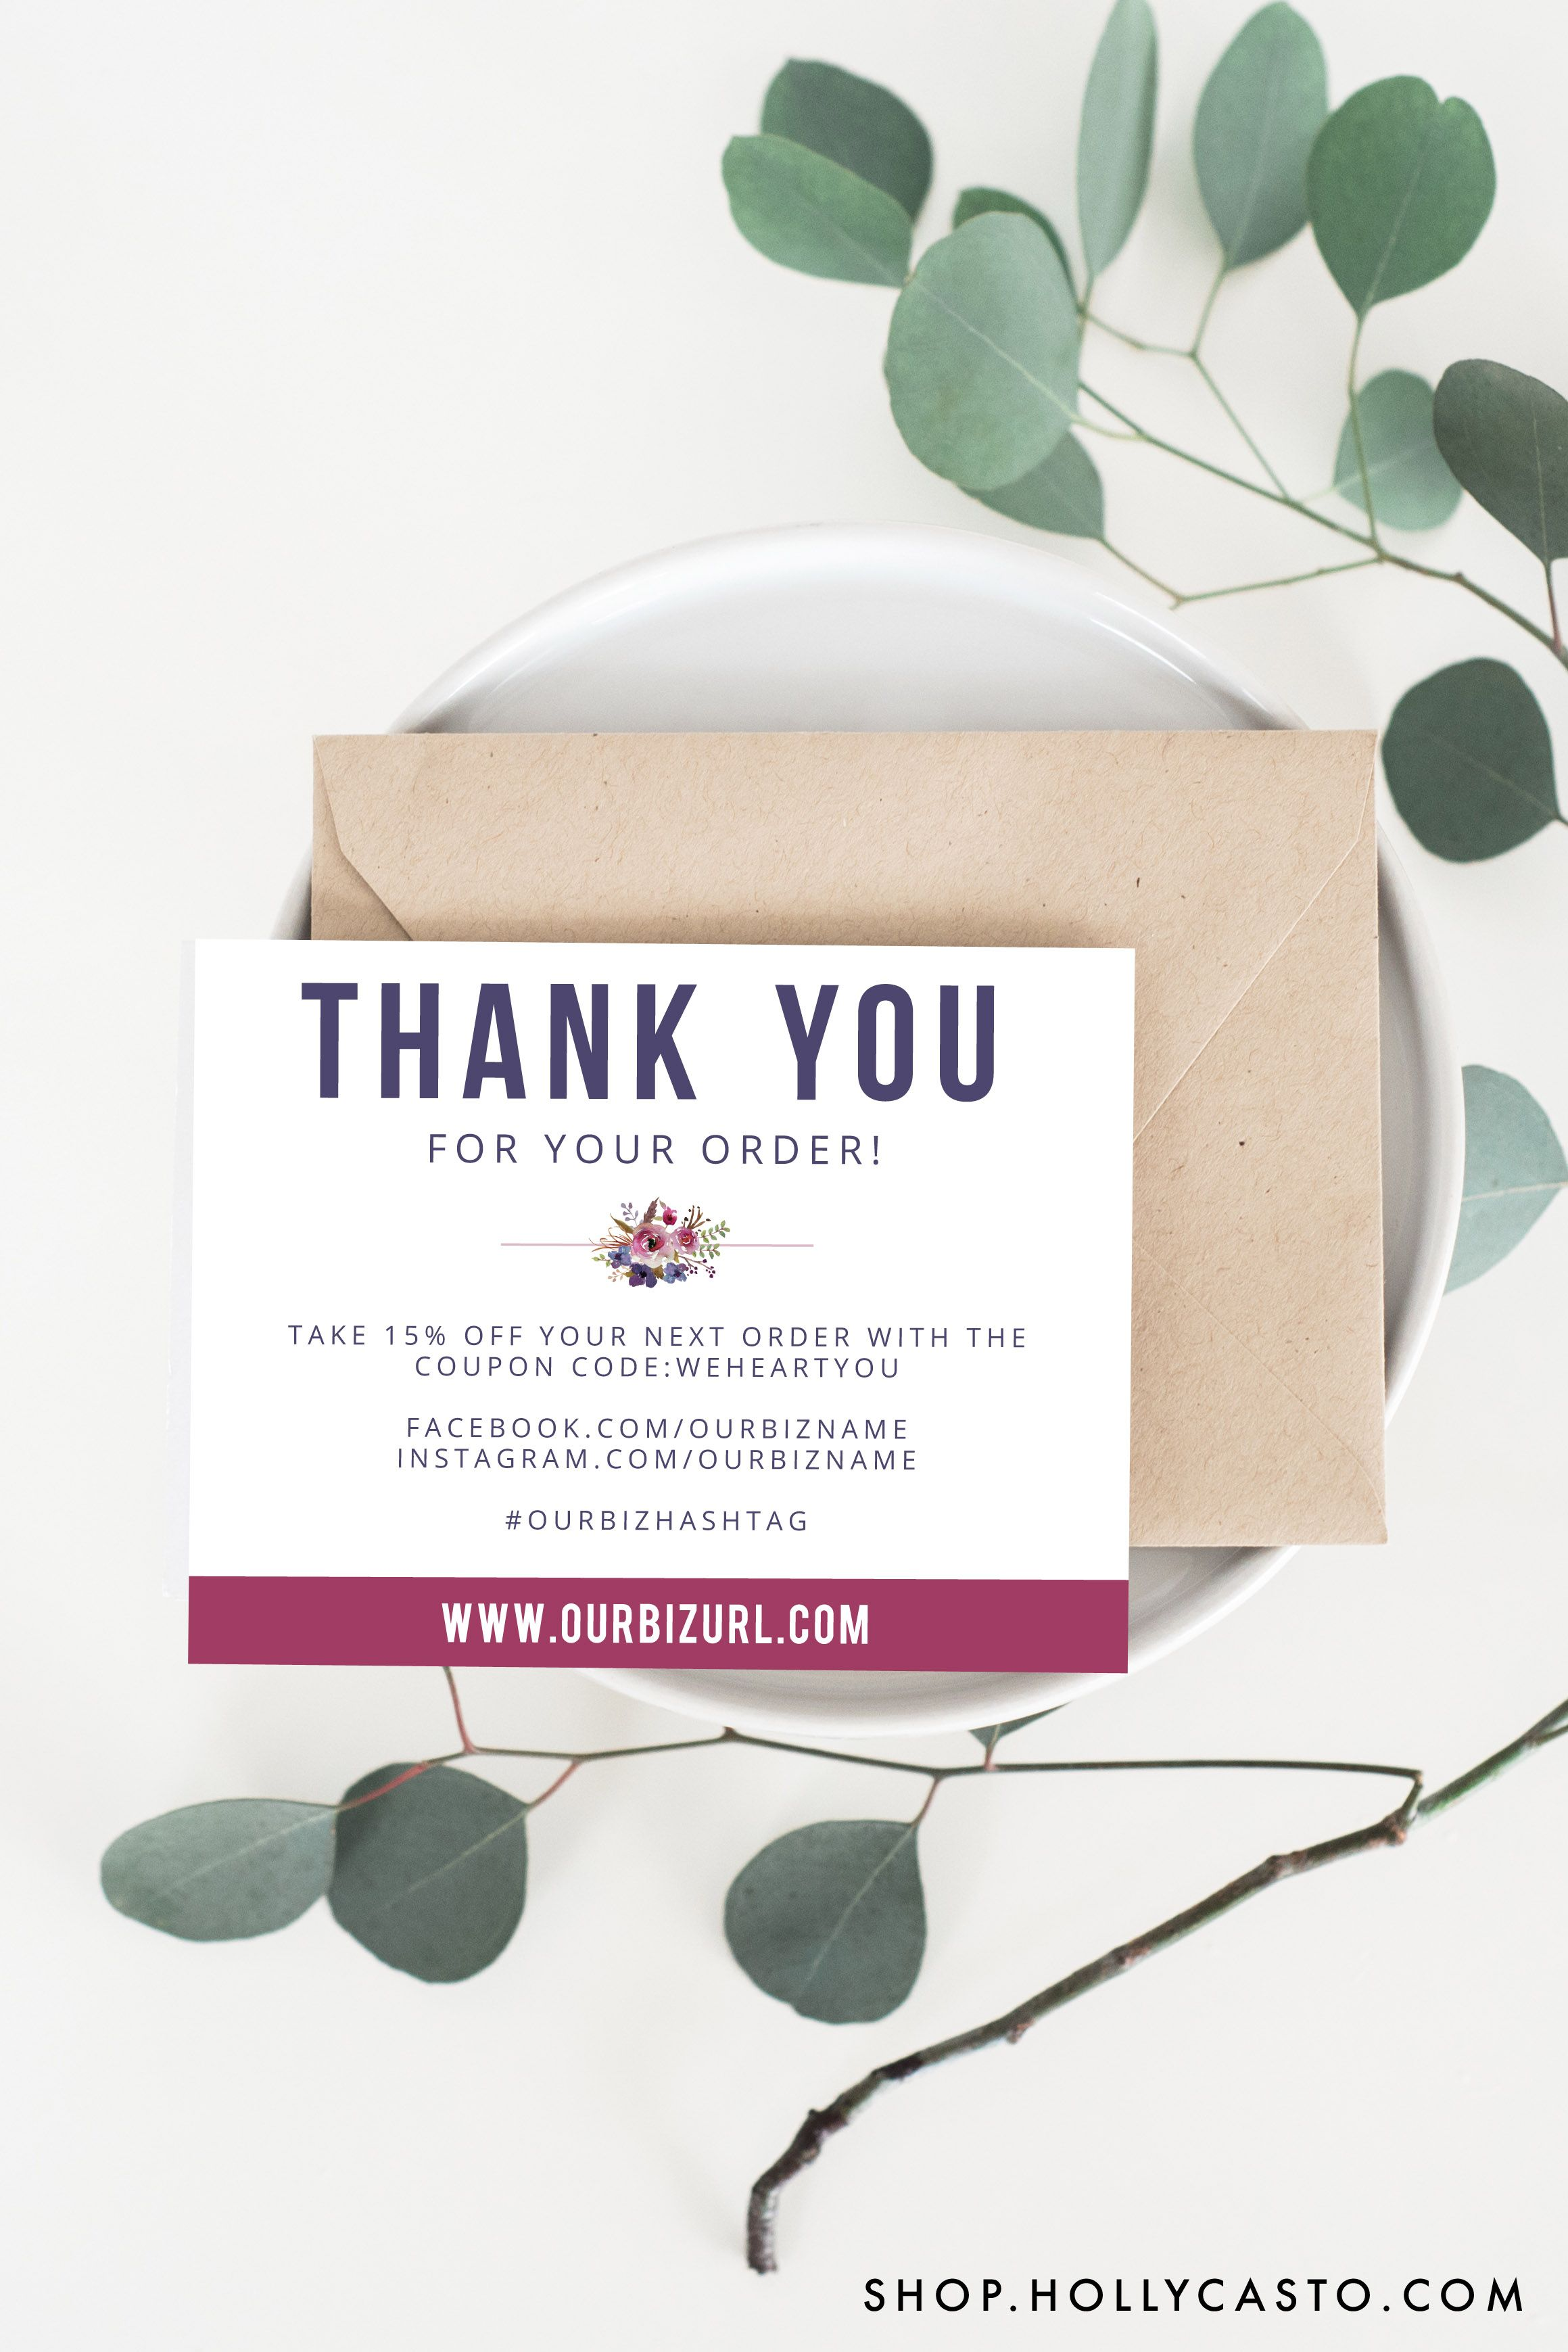 modern floral business packaging thank you cards for online shops ...